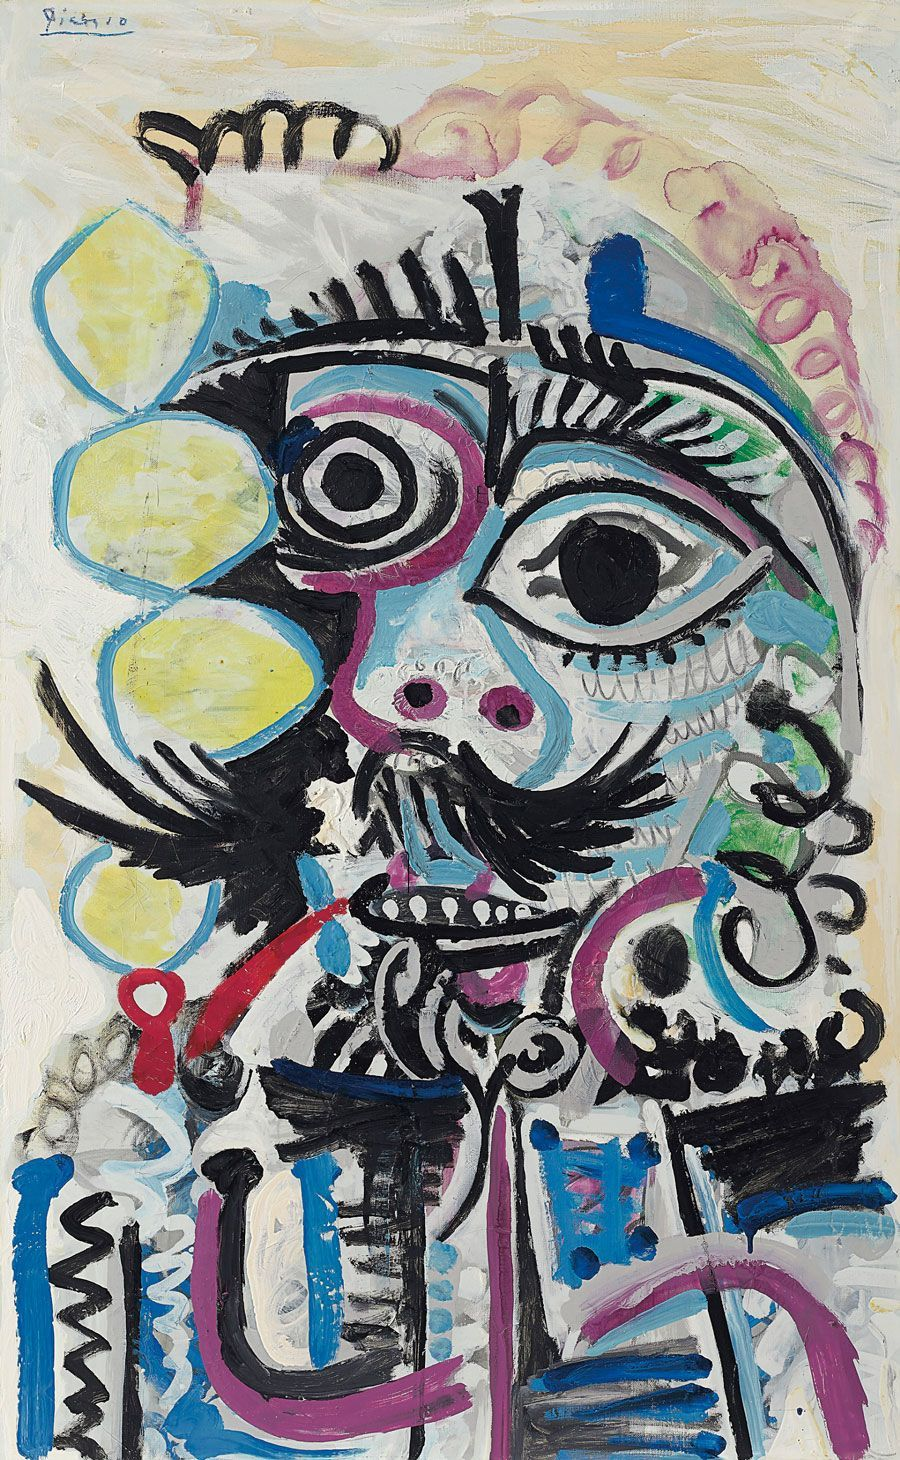 Pablo Picasso (1881-1973), Buste d'homme, 1968. Offered in the Impressionist and Modern Art Evening Sale on 11 November at Christie's in New York. Artwork: © 2019 Estate of Pablo Picasso / Artists Rights Society (ARS), New York